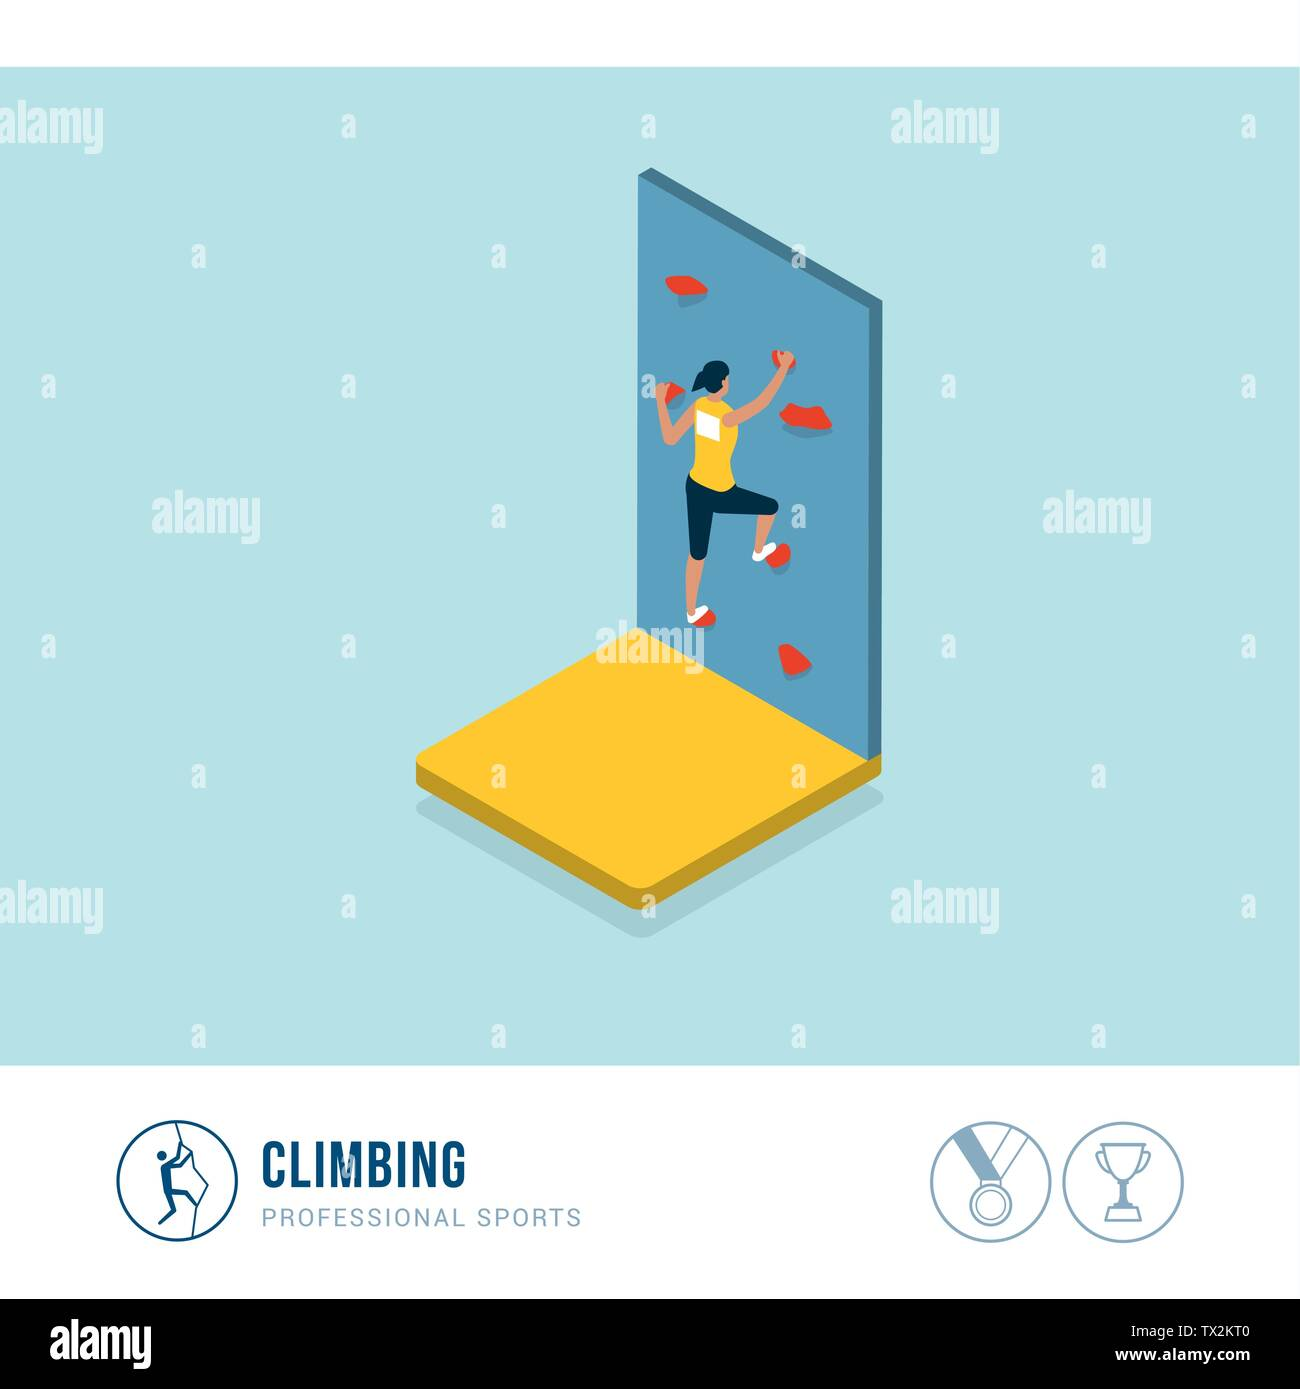 Professional sports competition: athletic woman climbing a wall - Stock Vector